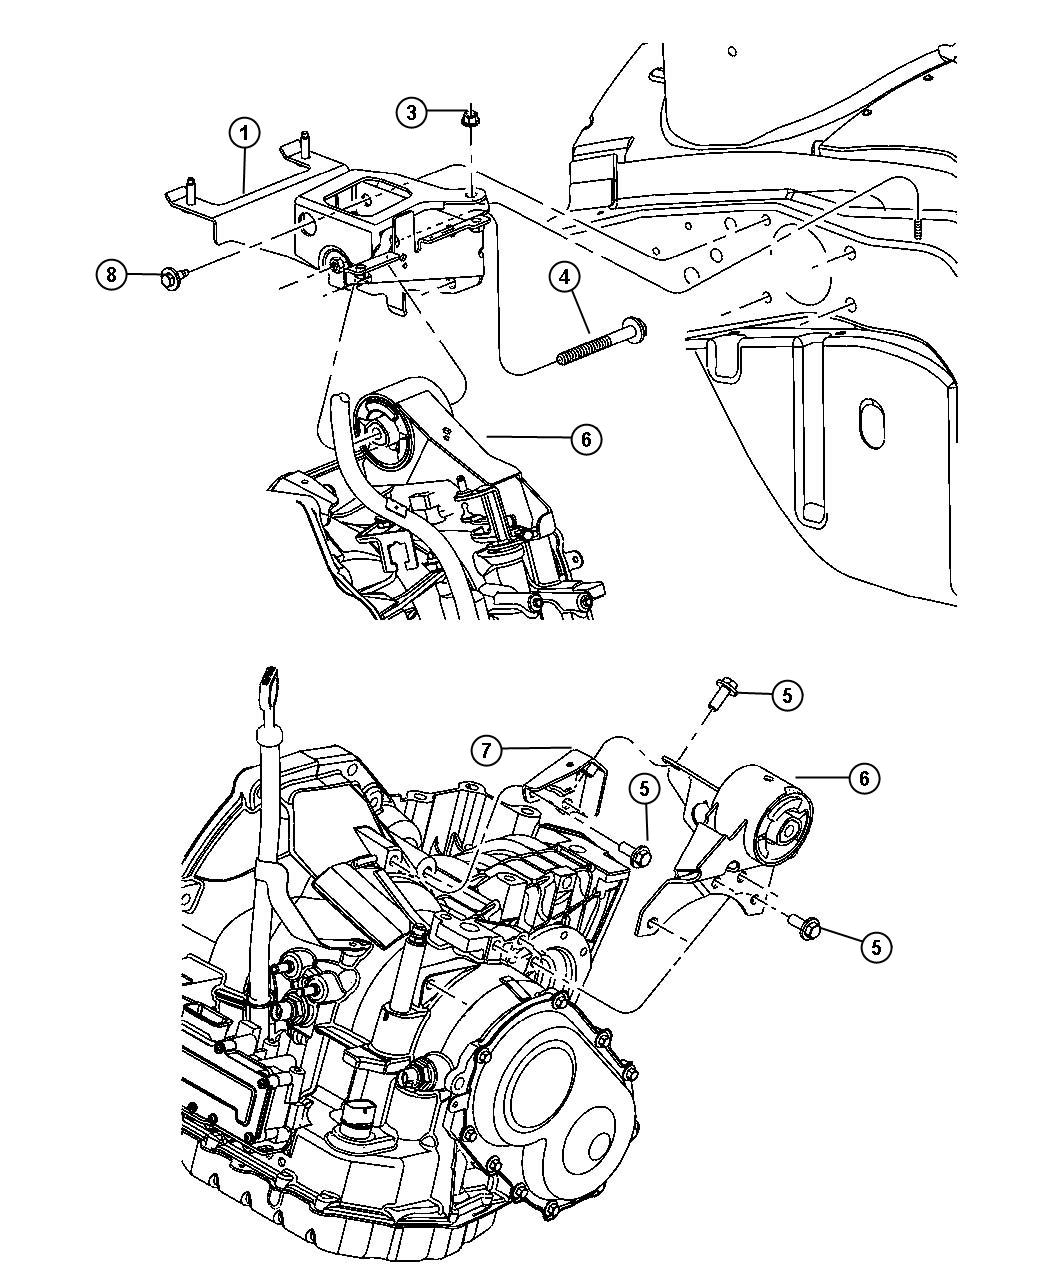 00i75927 diagrams 2000 dodge neon wiring diagram 2000 dodge intrepid Dodge Neon Stereo Wiring at panicattacktreatment.co